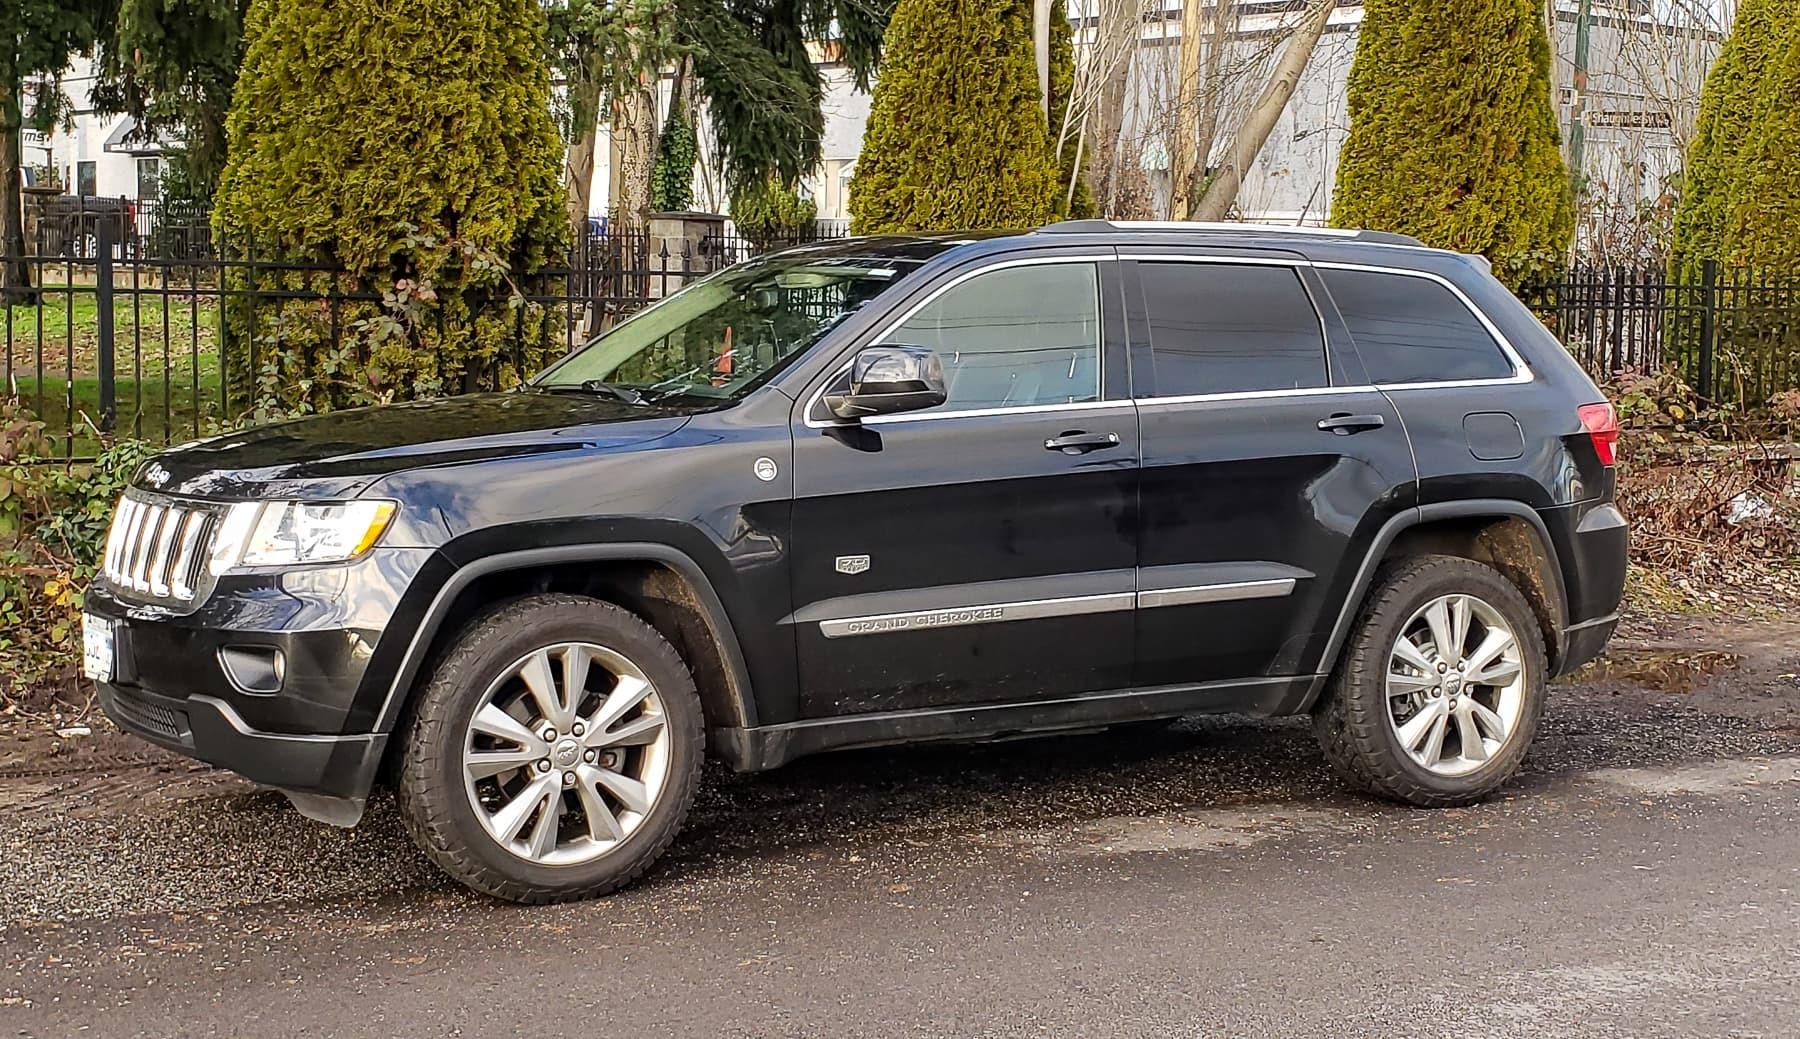 2011 Jeep Grand Cherokee, Blend Door Motor